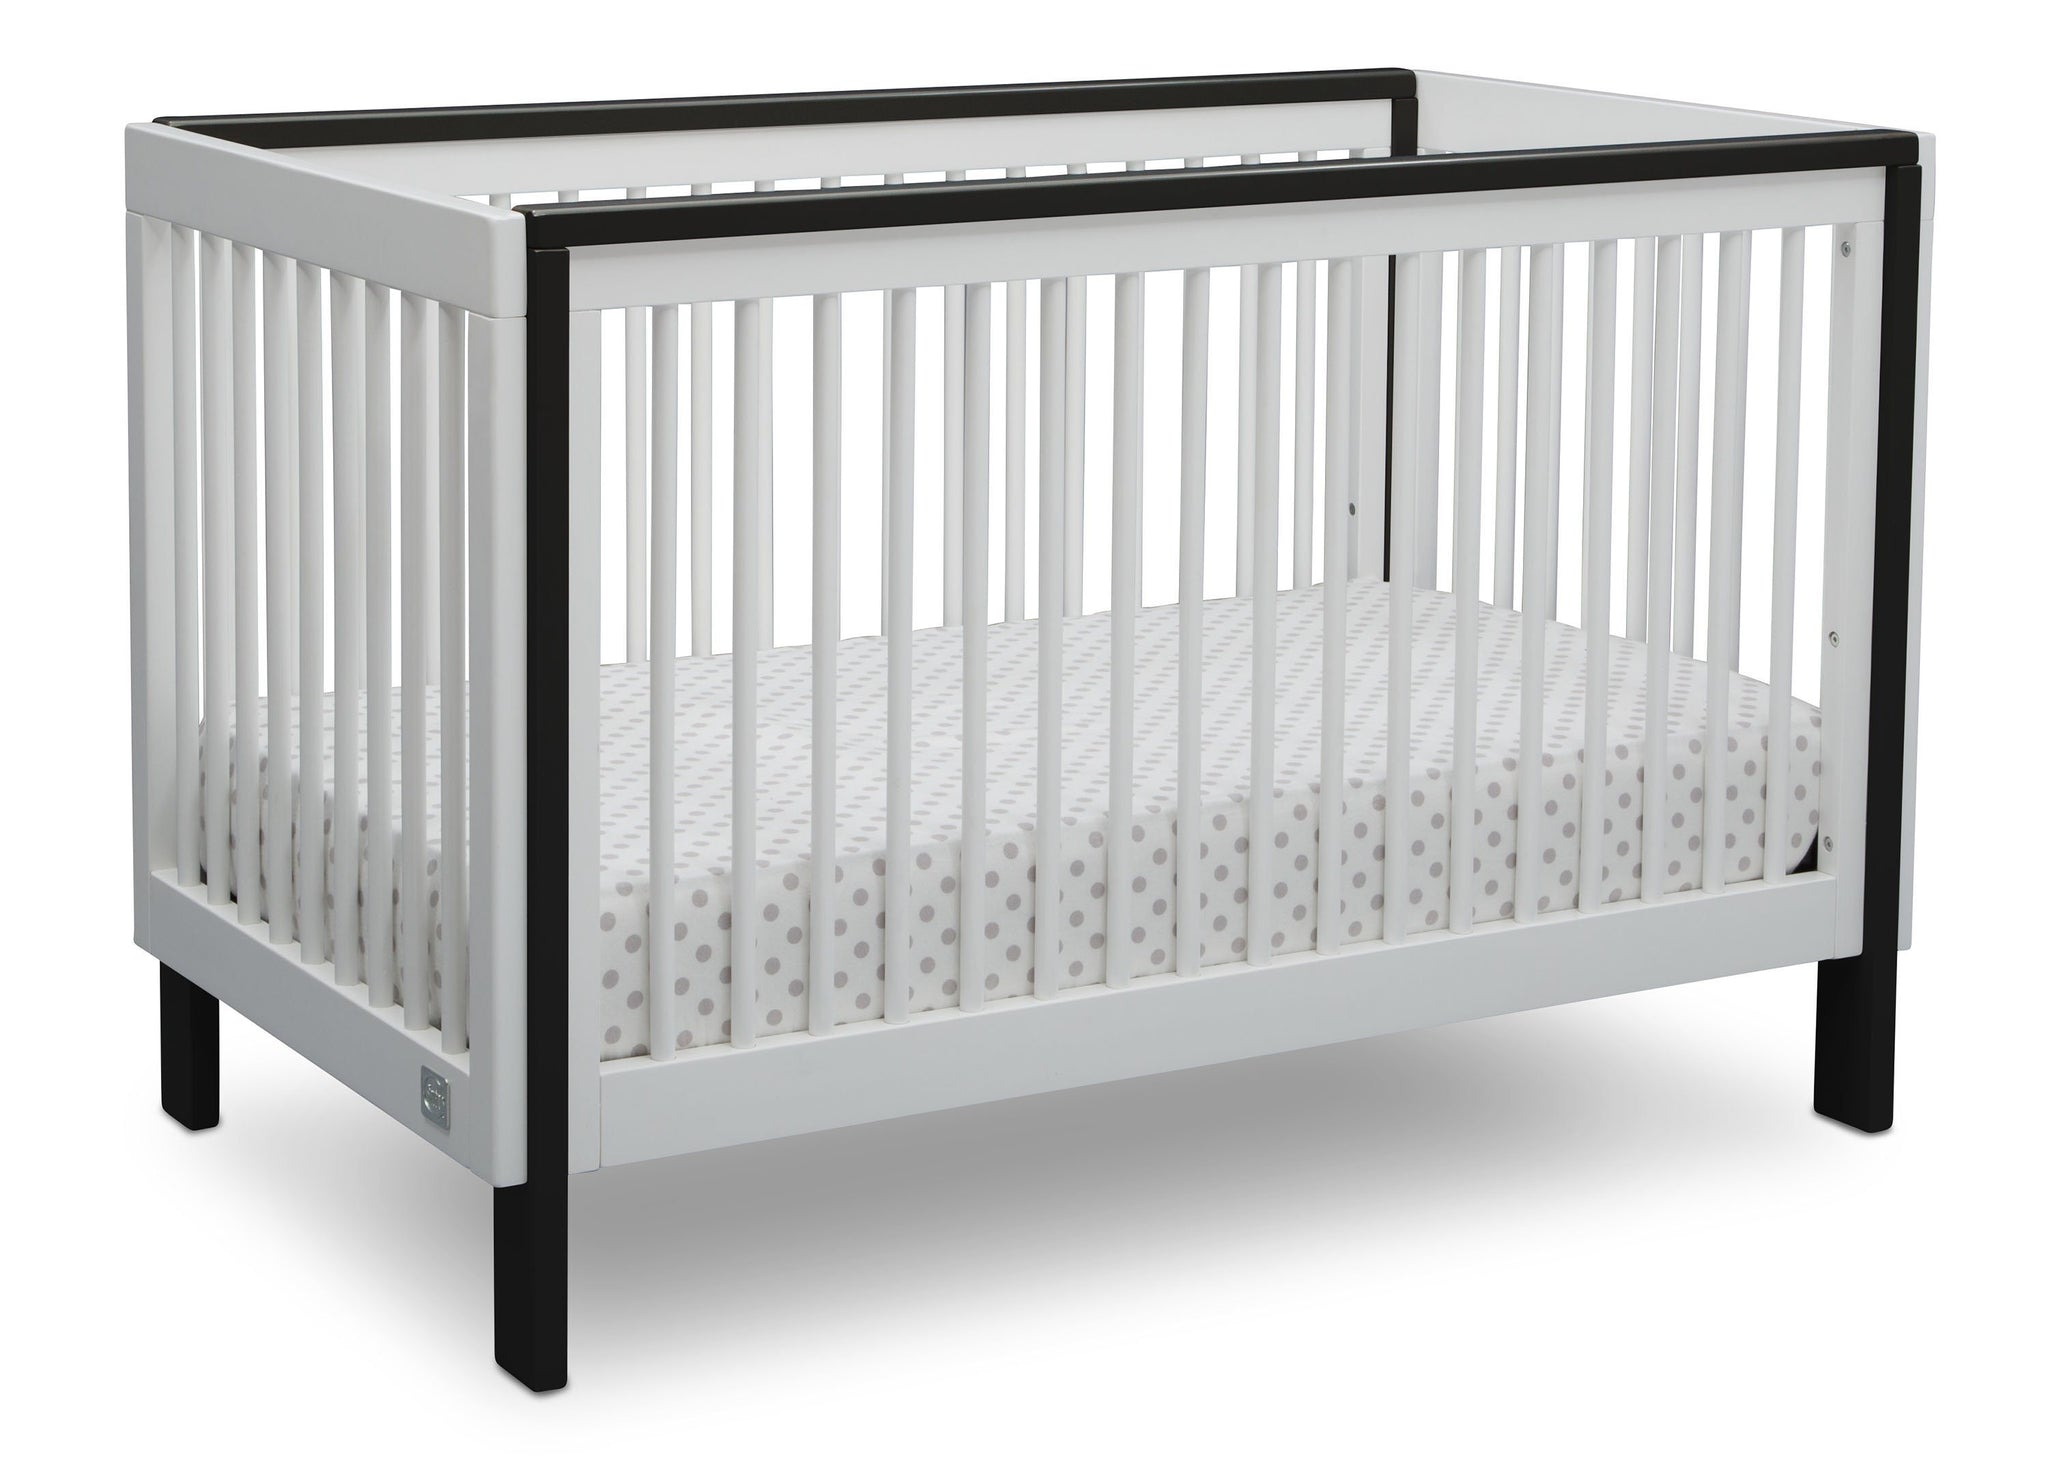 Serta Fremont 3-in-1 Convertible Crib Bianca White with Ebony (149) Angle b2b